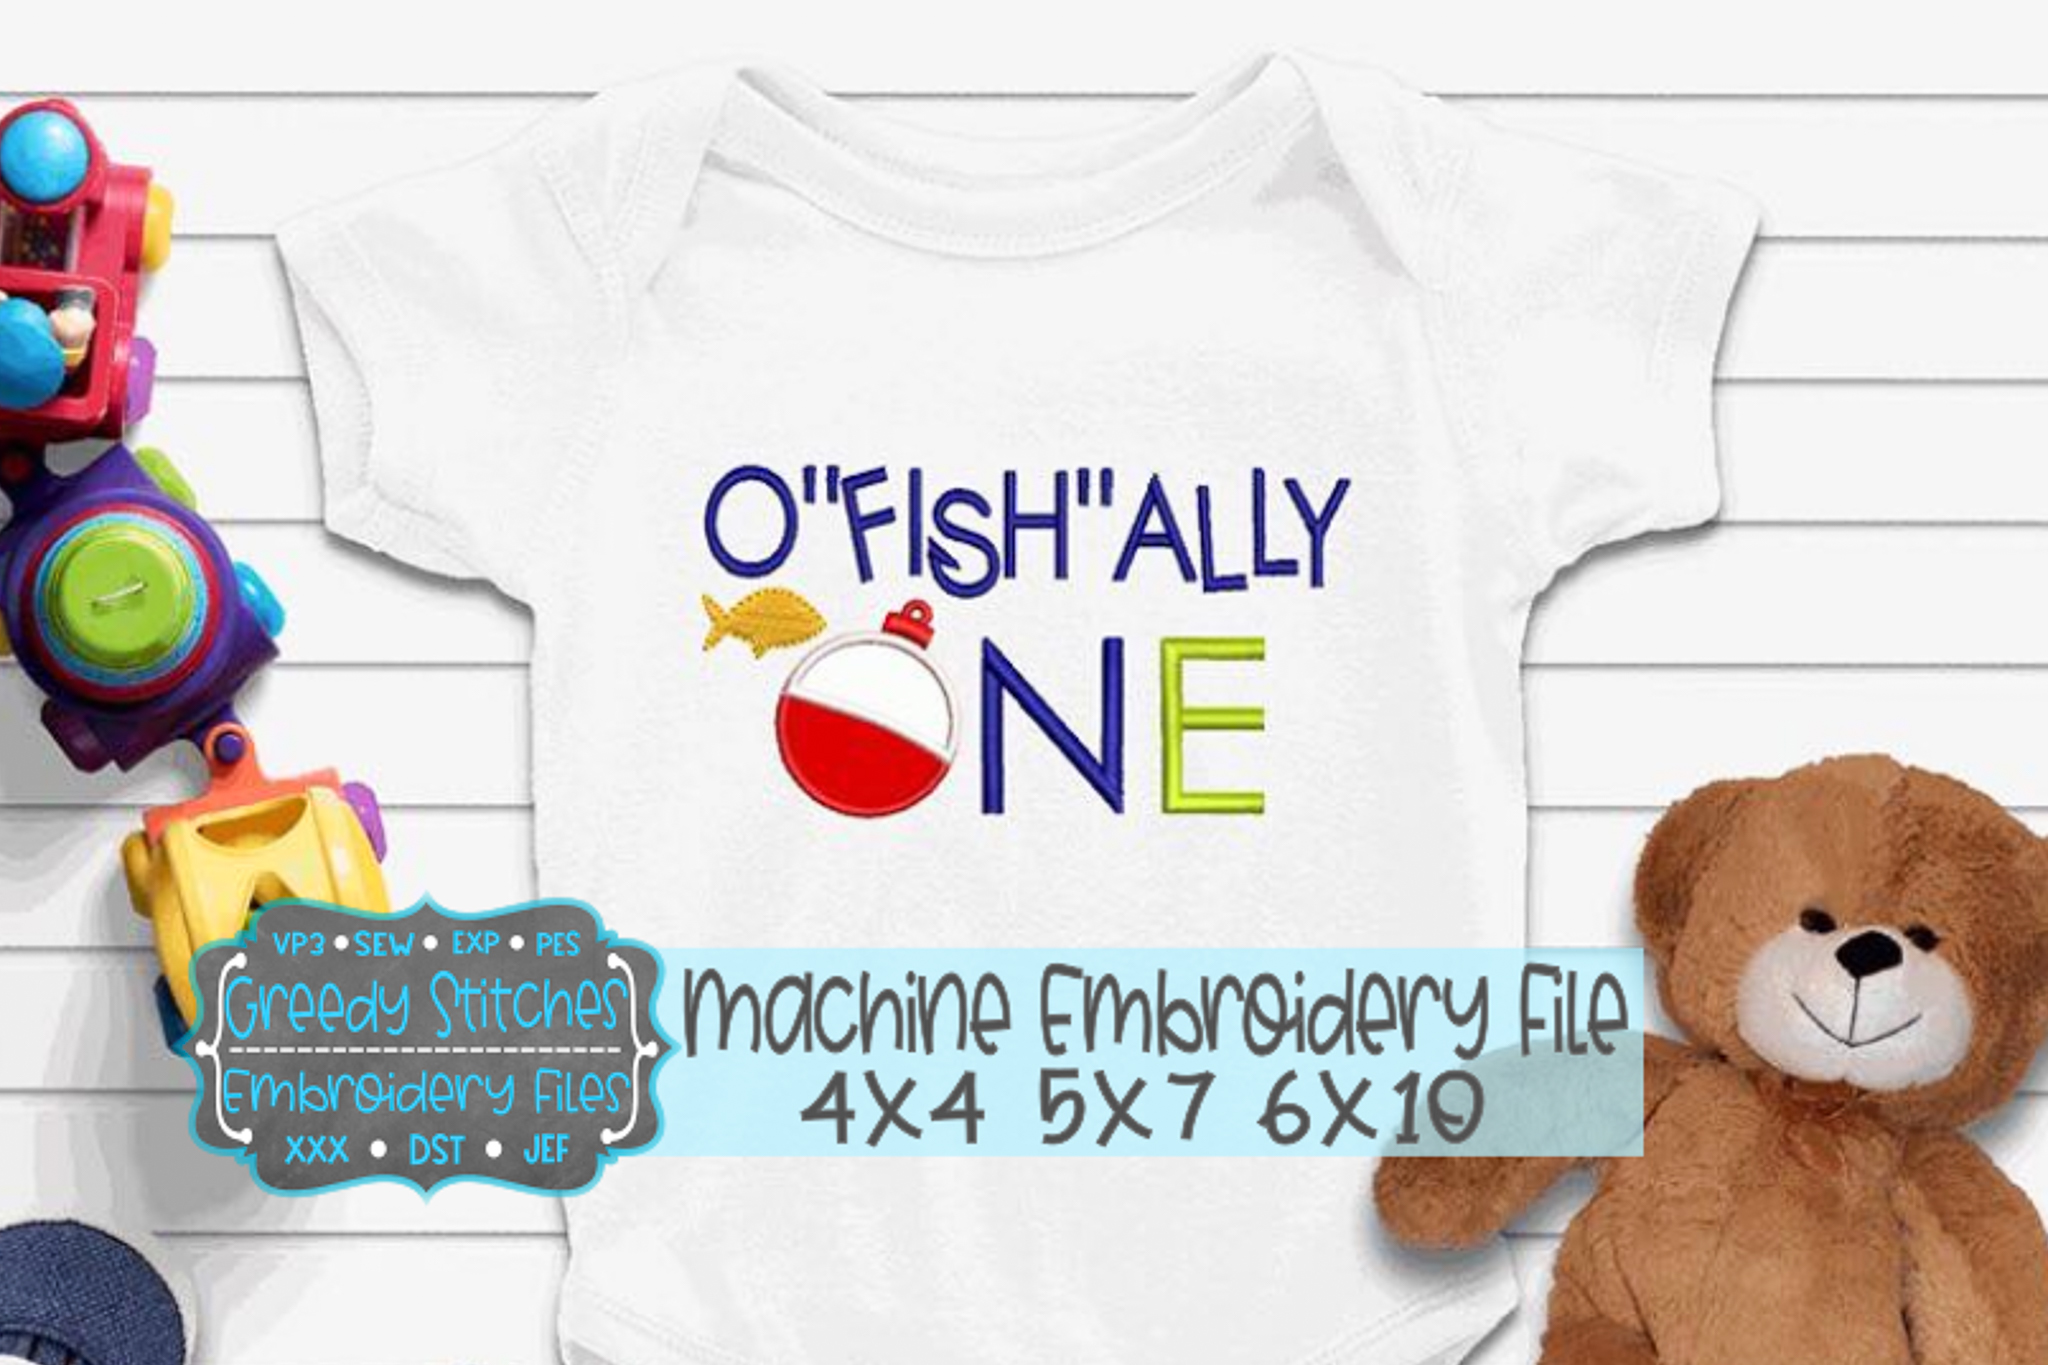 O'FISH'ALLY ONE Machne Embroidery Files example image 4